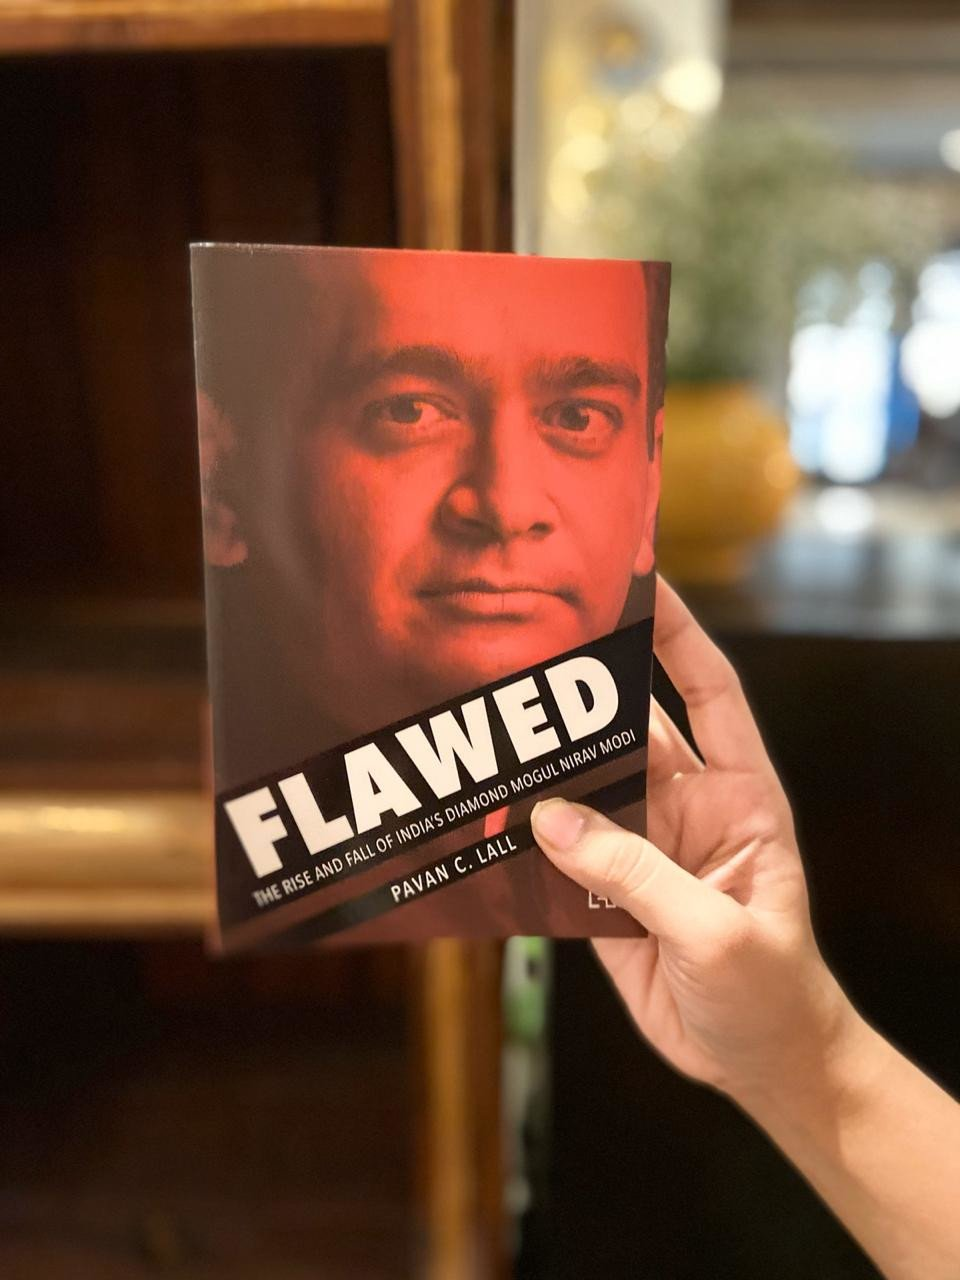 The incredible Twists And Turns Of Nirav Modi's Story: Pavan C. Lall Releases His Book 'Flawed'